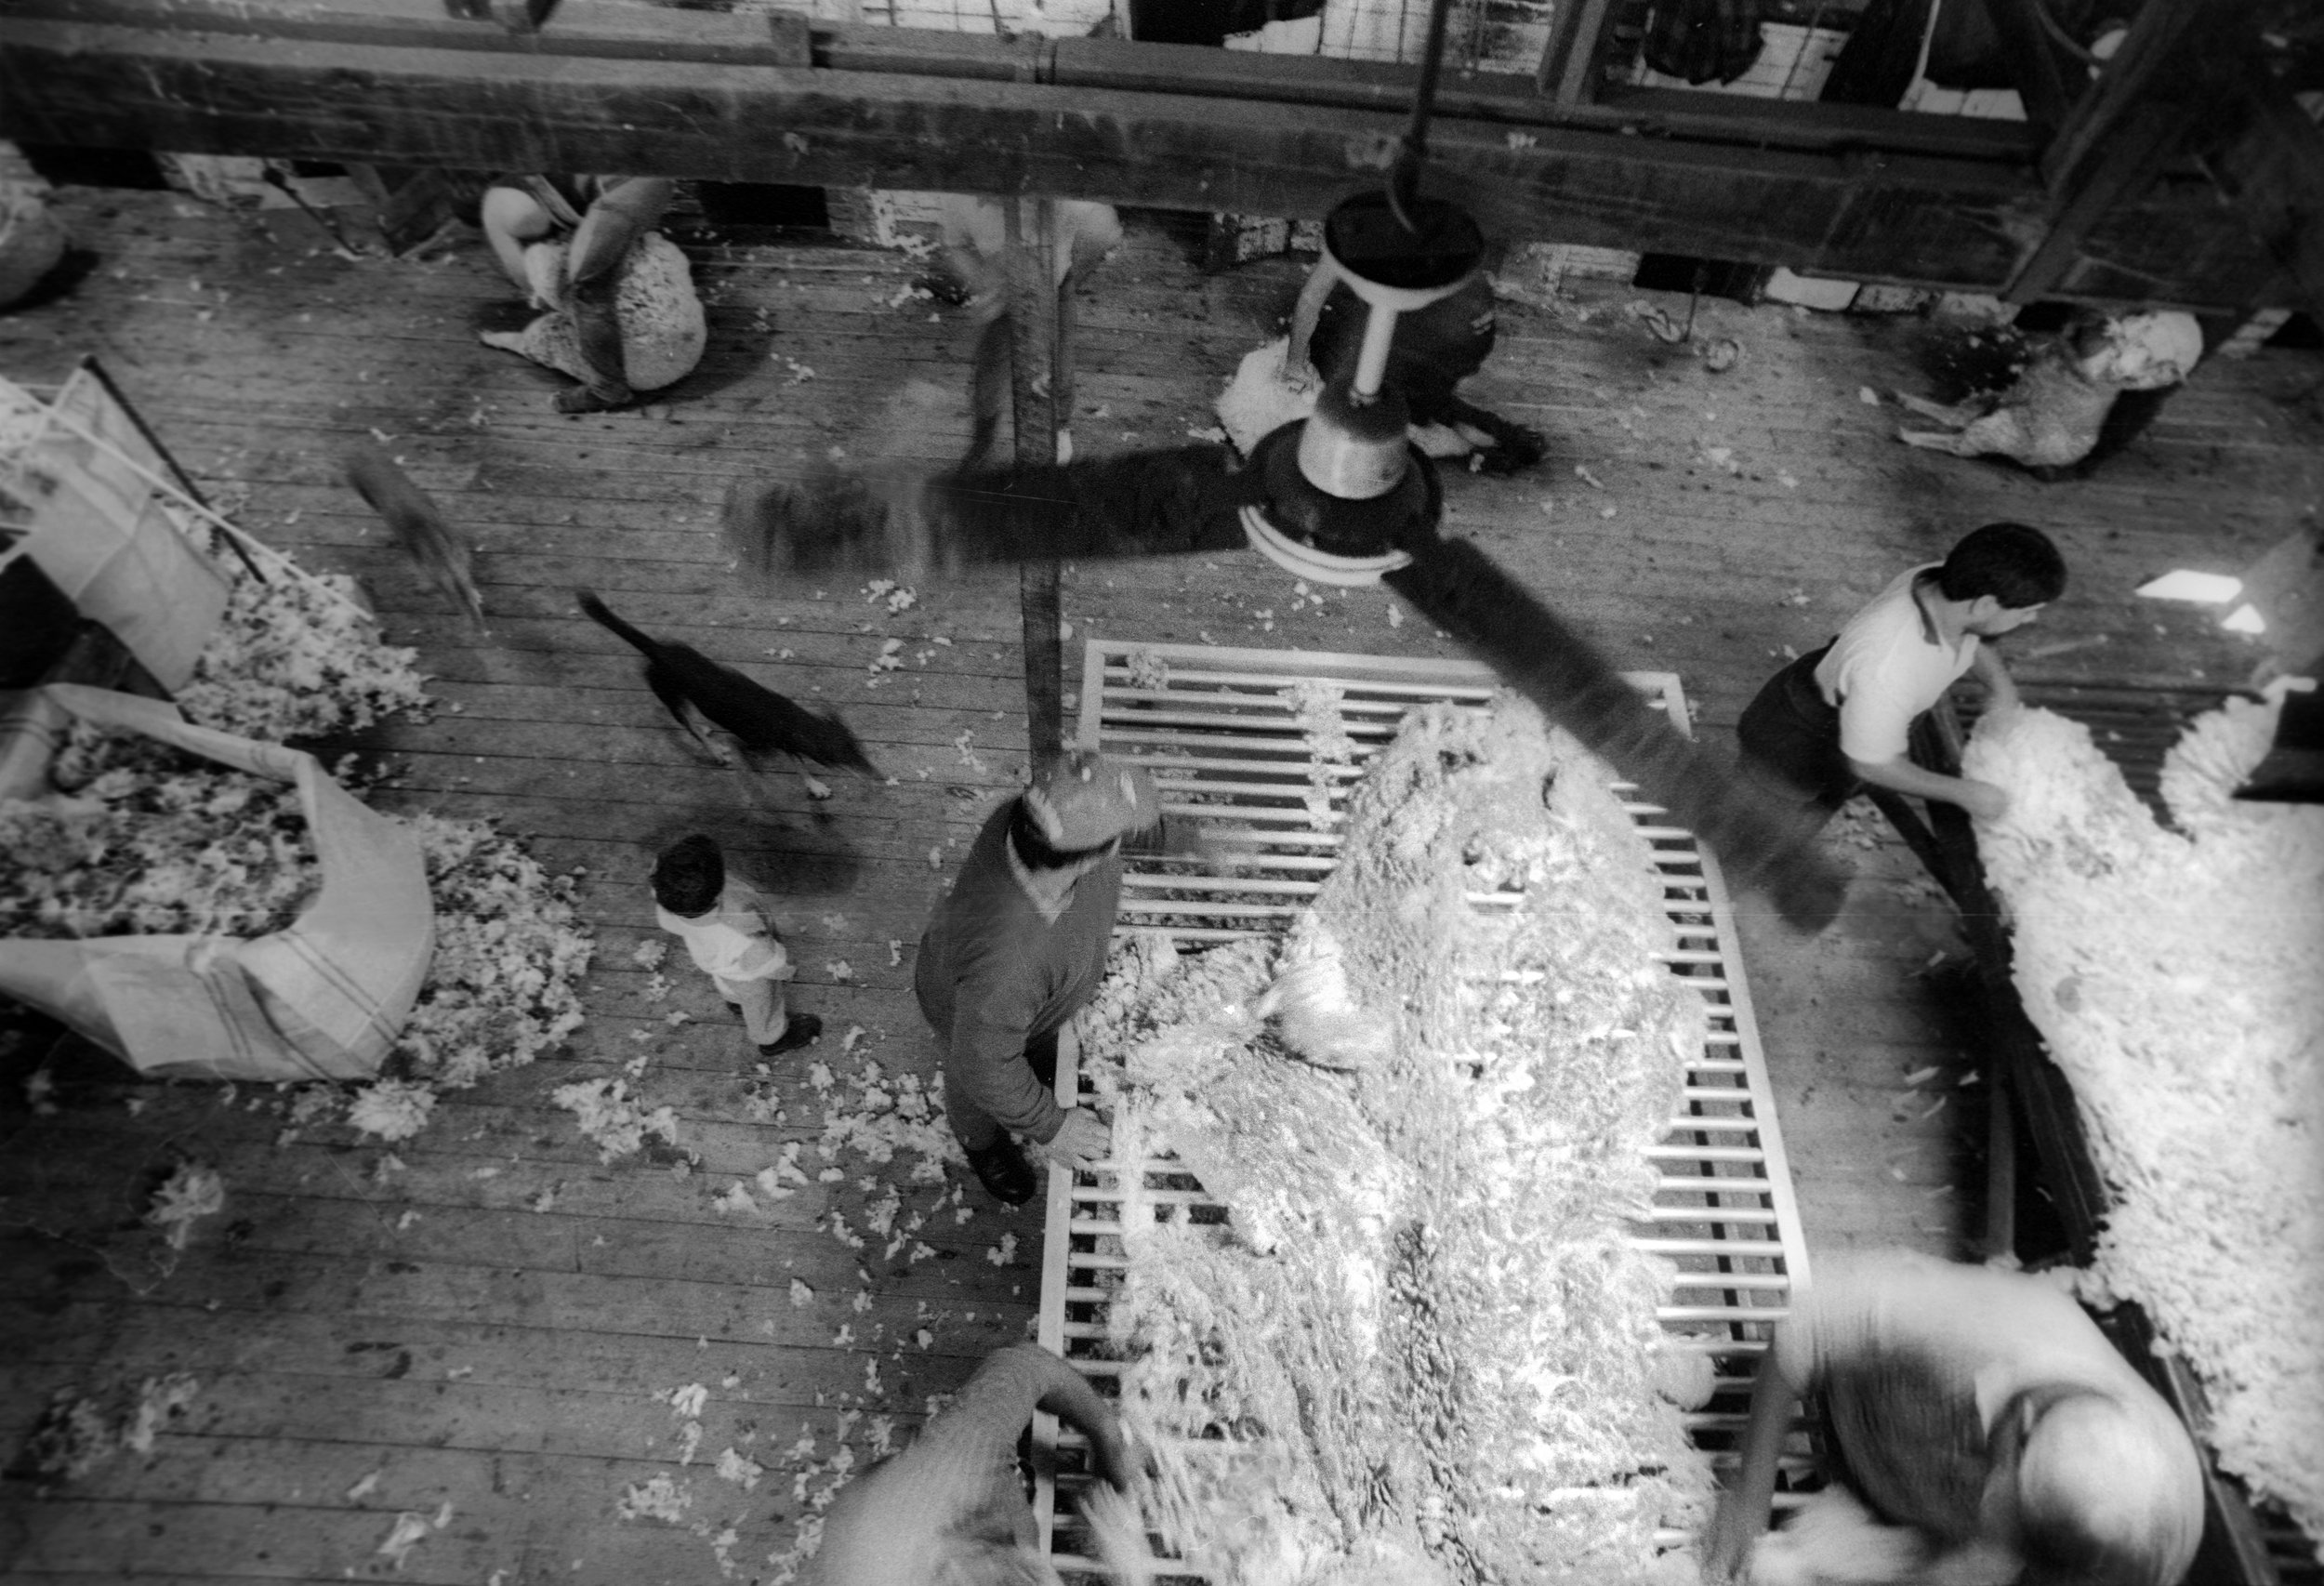 Sorting the fleece on a busy shearing shed 'floor'. Outback, NSW, Australia. 1997